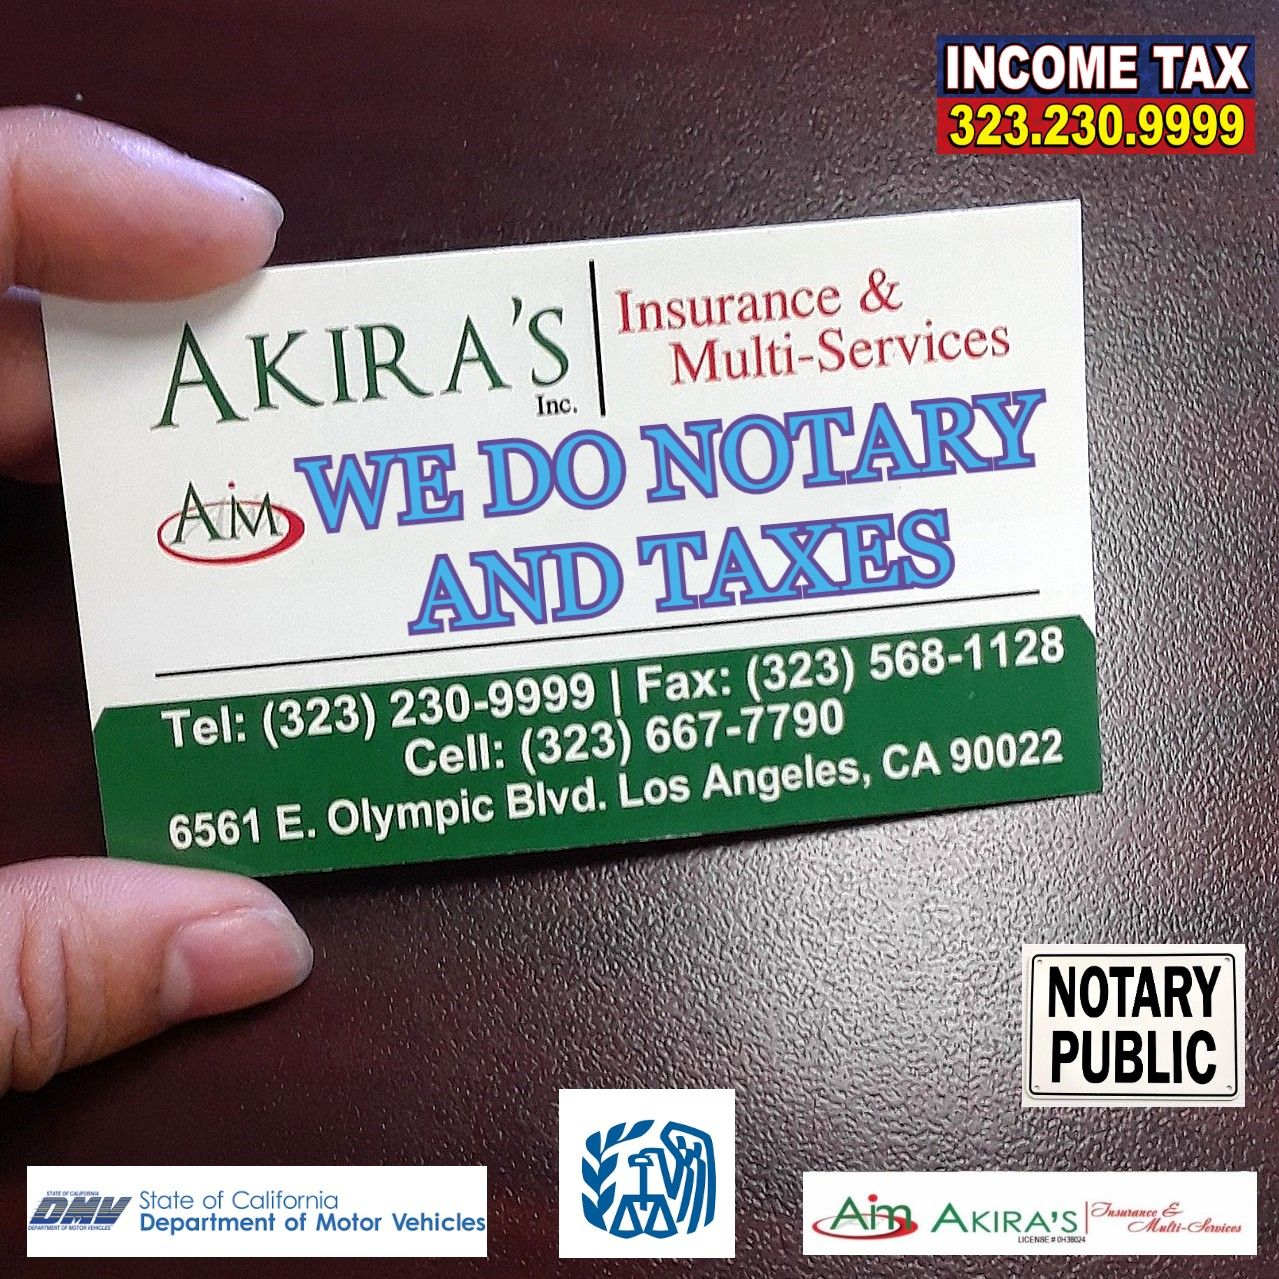 CALL FOR AN APPOINTMENT 3232309999 Notary public